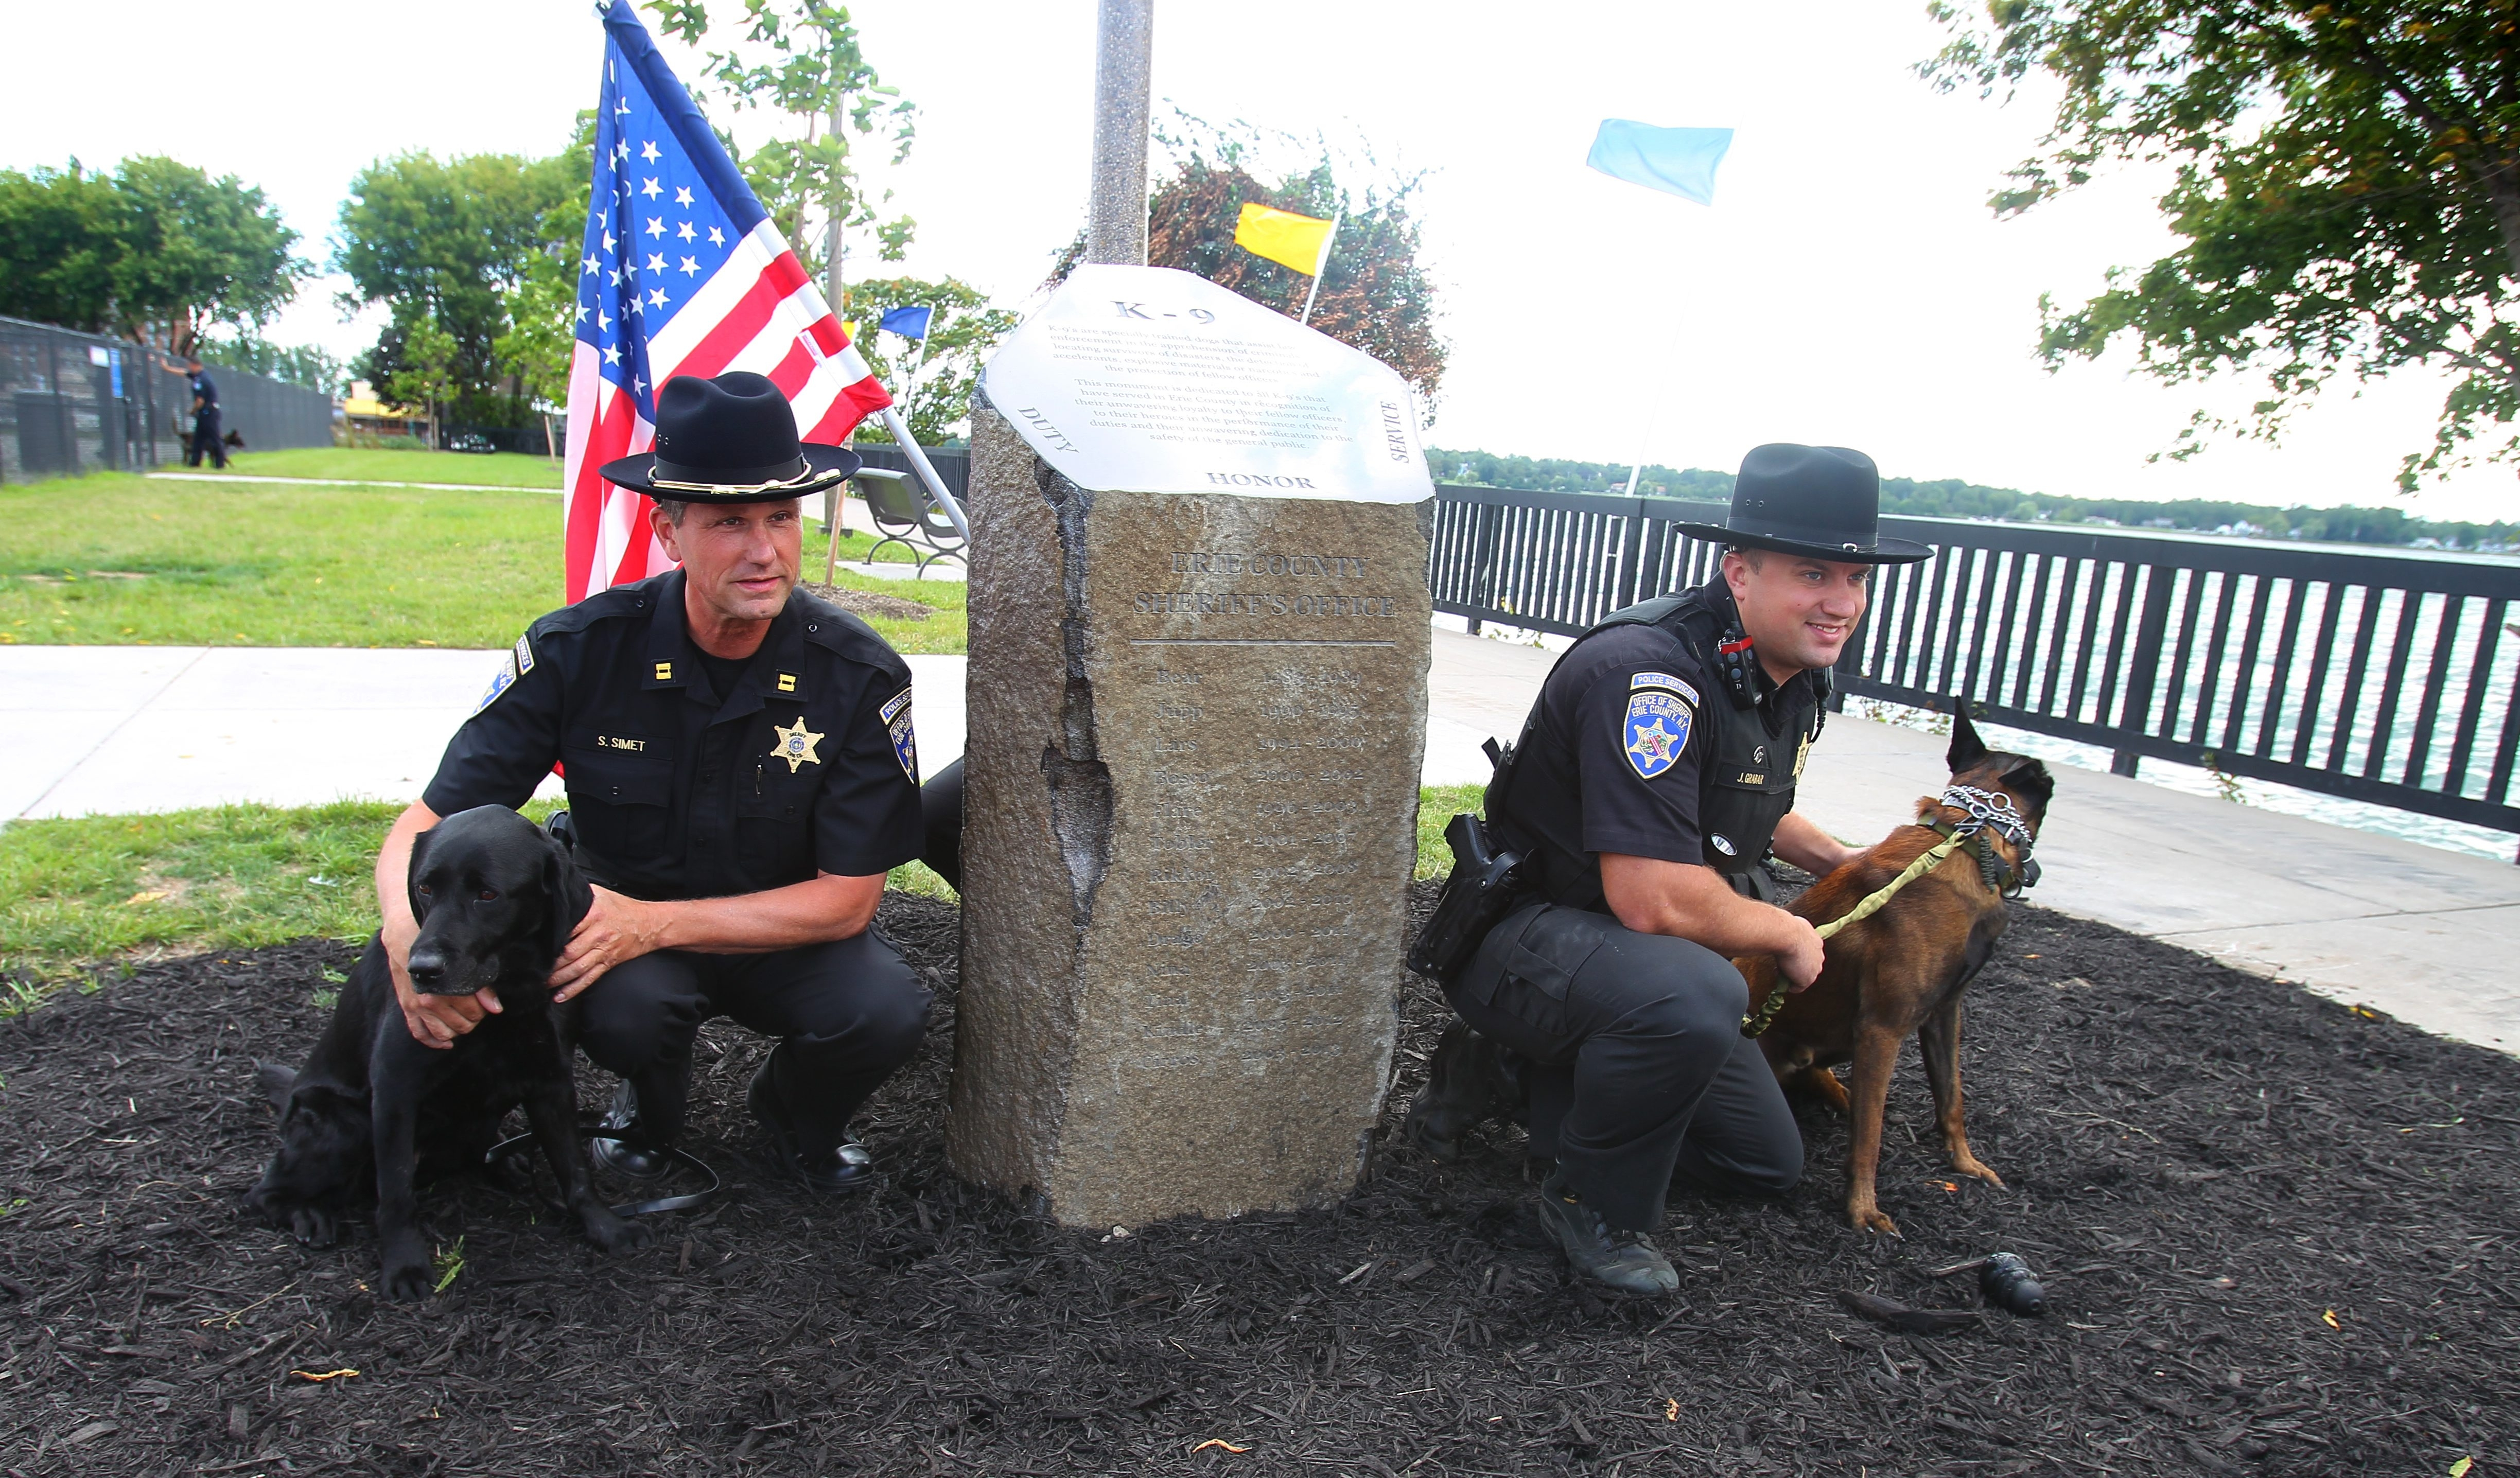 Capt. Sean Simet, with Jules, left, and Deputy Jordan Graber, with Cort, attend a dedication of a monument in Black Rock Canal Park honoring dogs in K-9 units Tuesday.